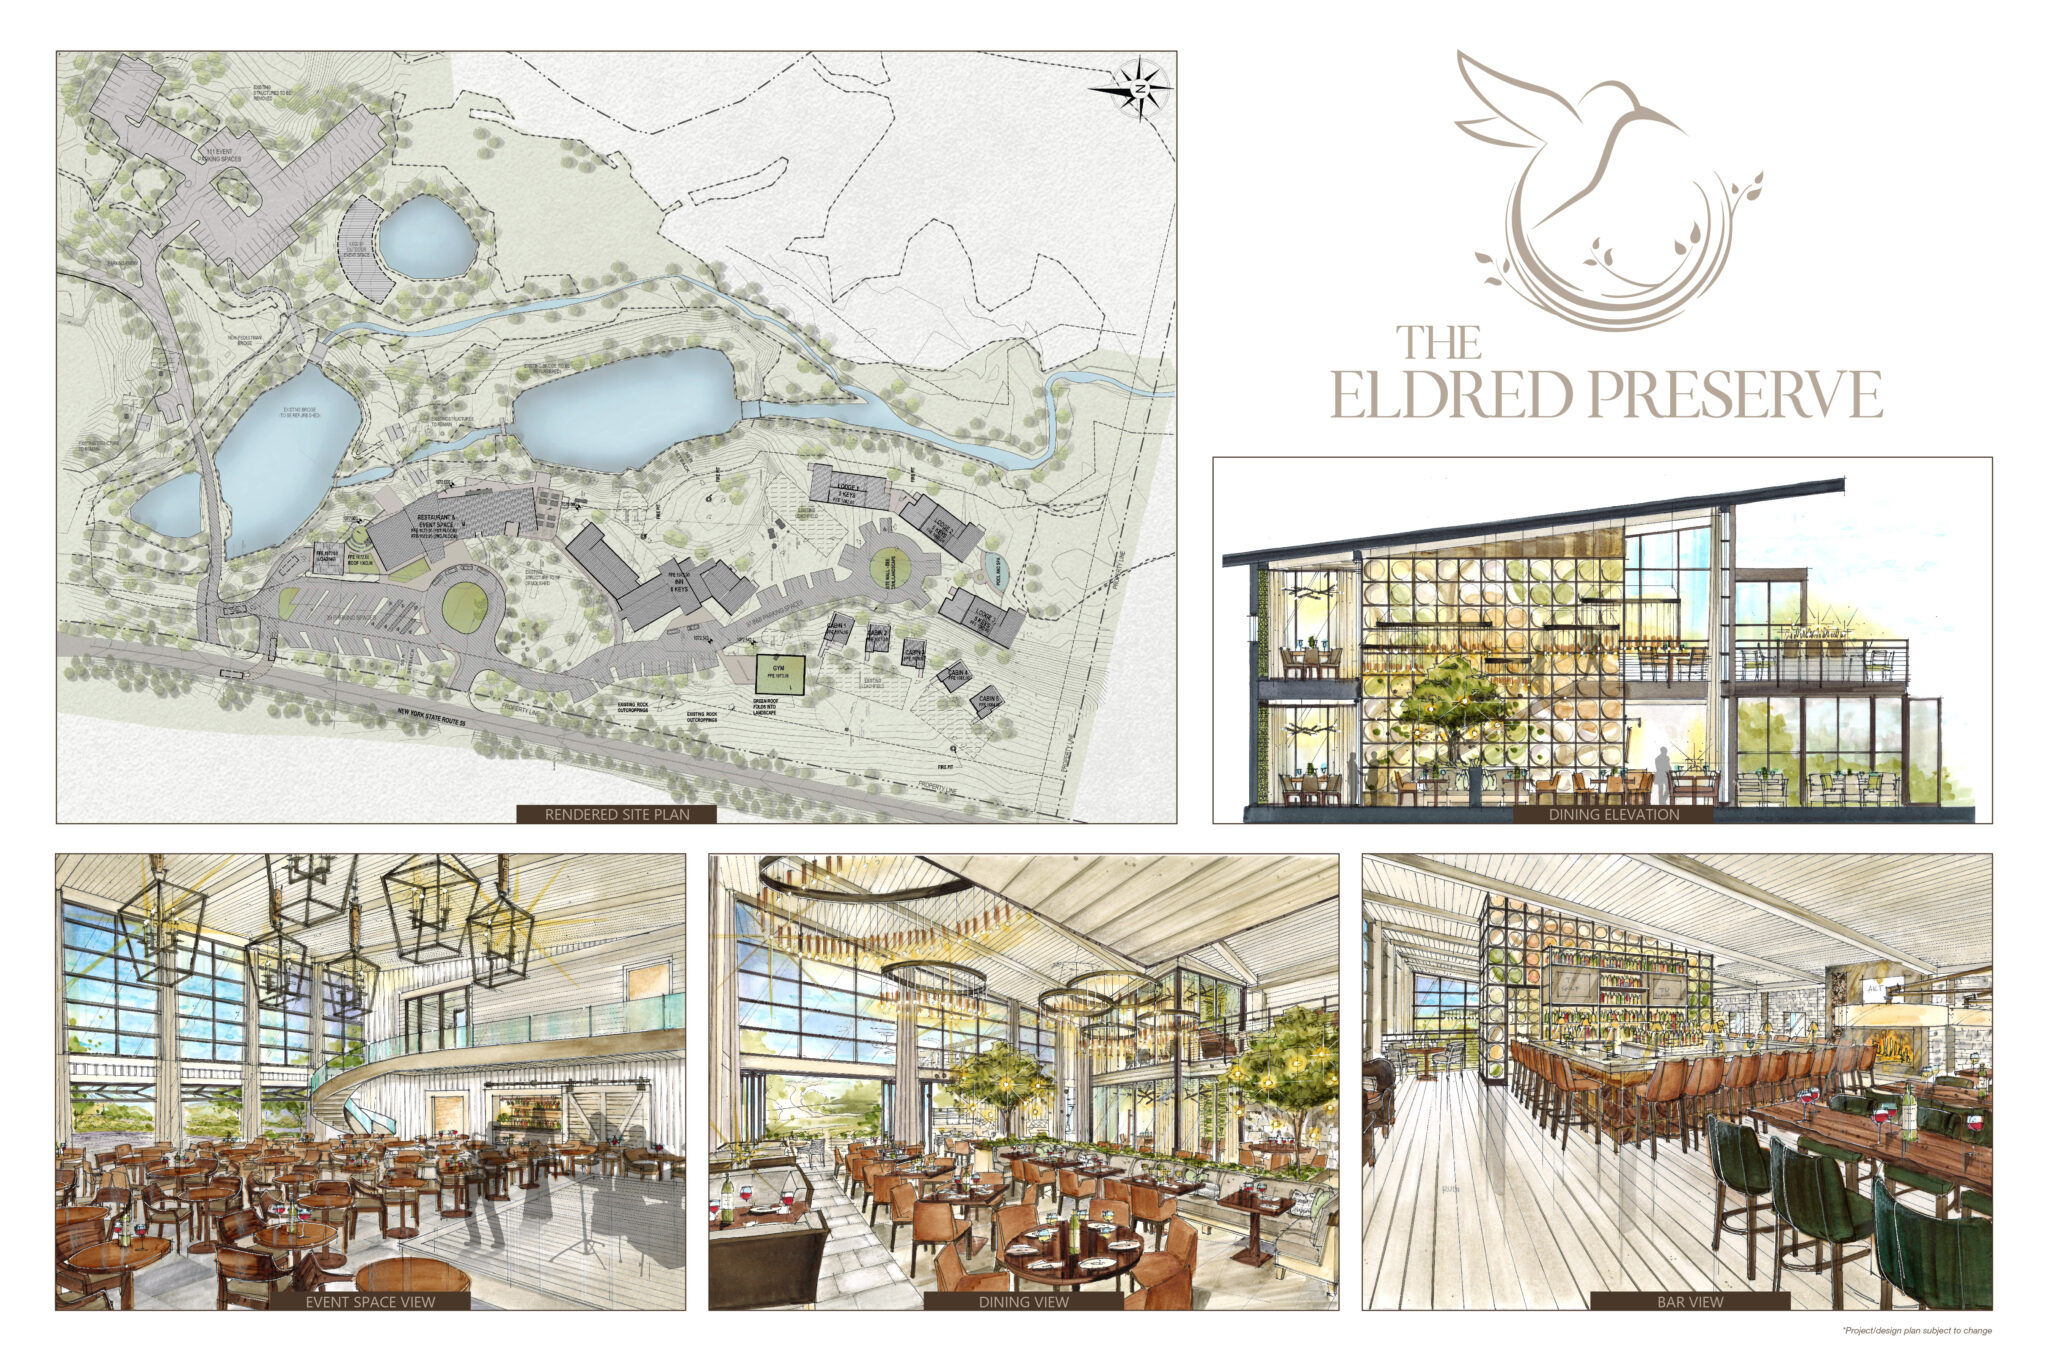 interior design renderings and topographical map of the eldred preserve property